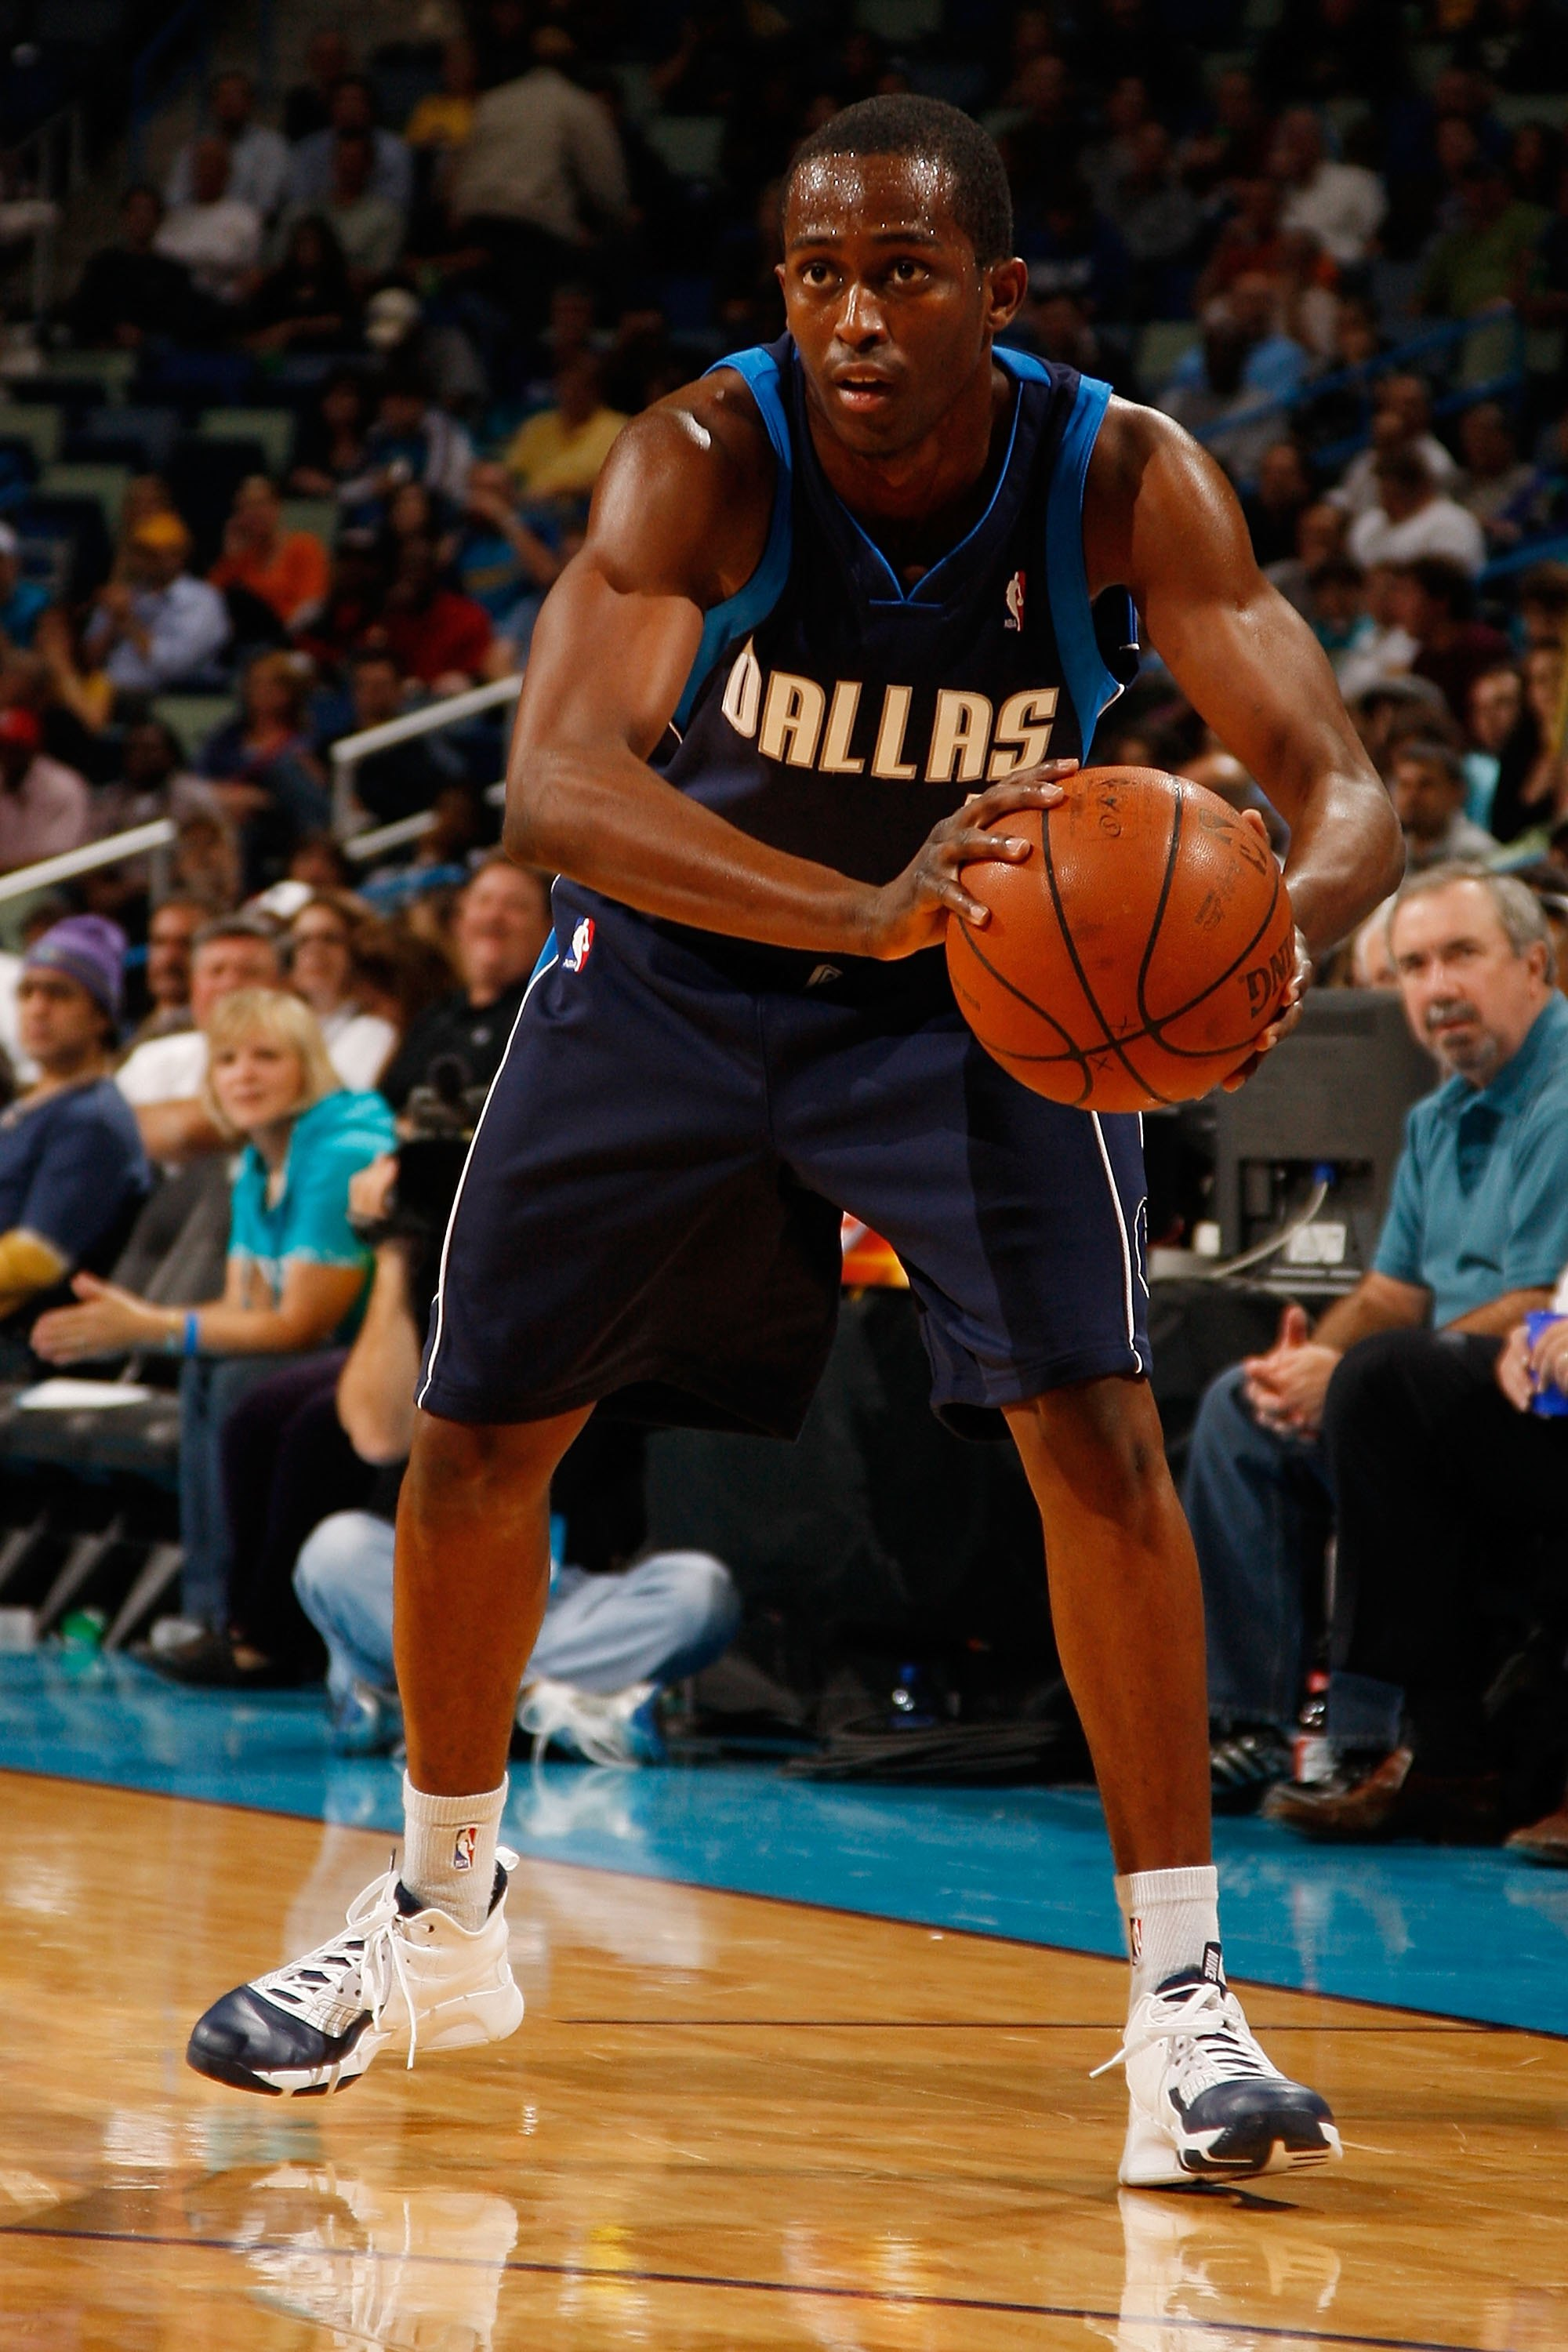 NEW ORLEANS - NOVEMBER 04:  Rodrigue Beaubois #3 of the Dallas Mavericks during the game against the New Orleans Hornets at New Orleans Arena on November 4, 2009 in New Orleans, Louisiana.  NOTE TO USER: User expressly acknowledges and agrees that, by dow